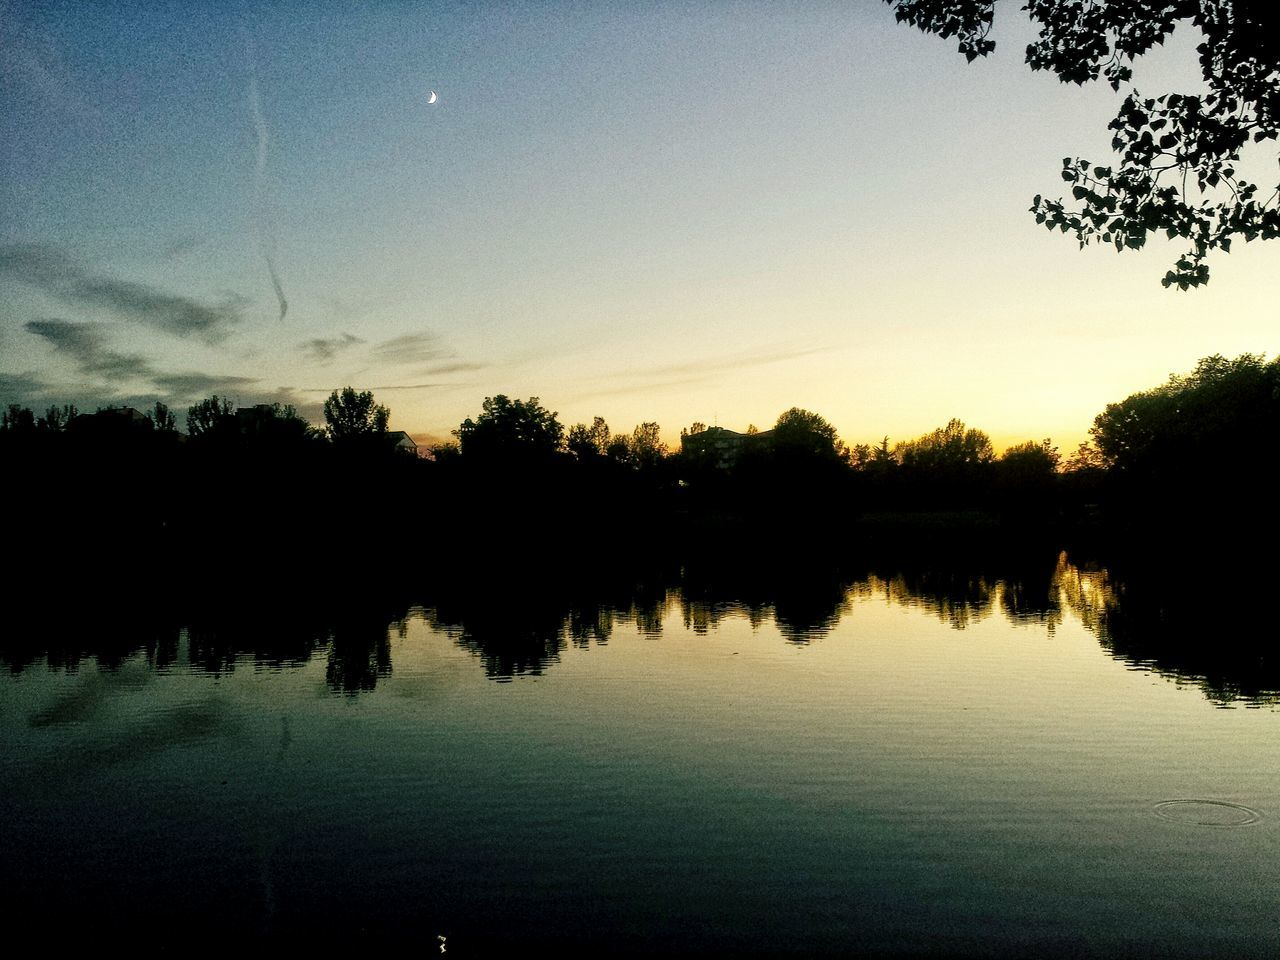 reflection, tree, water, lake, silhouette, tranquil scene, nature, sunset, beauty in nature, tranquility, scenics, sky, no people, outdoors, standing water, waterfront, growth, day